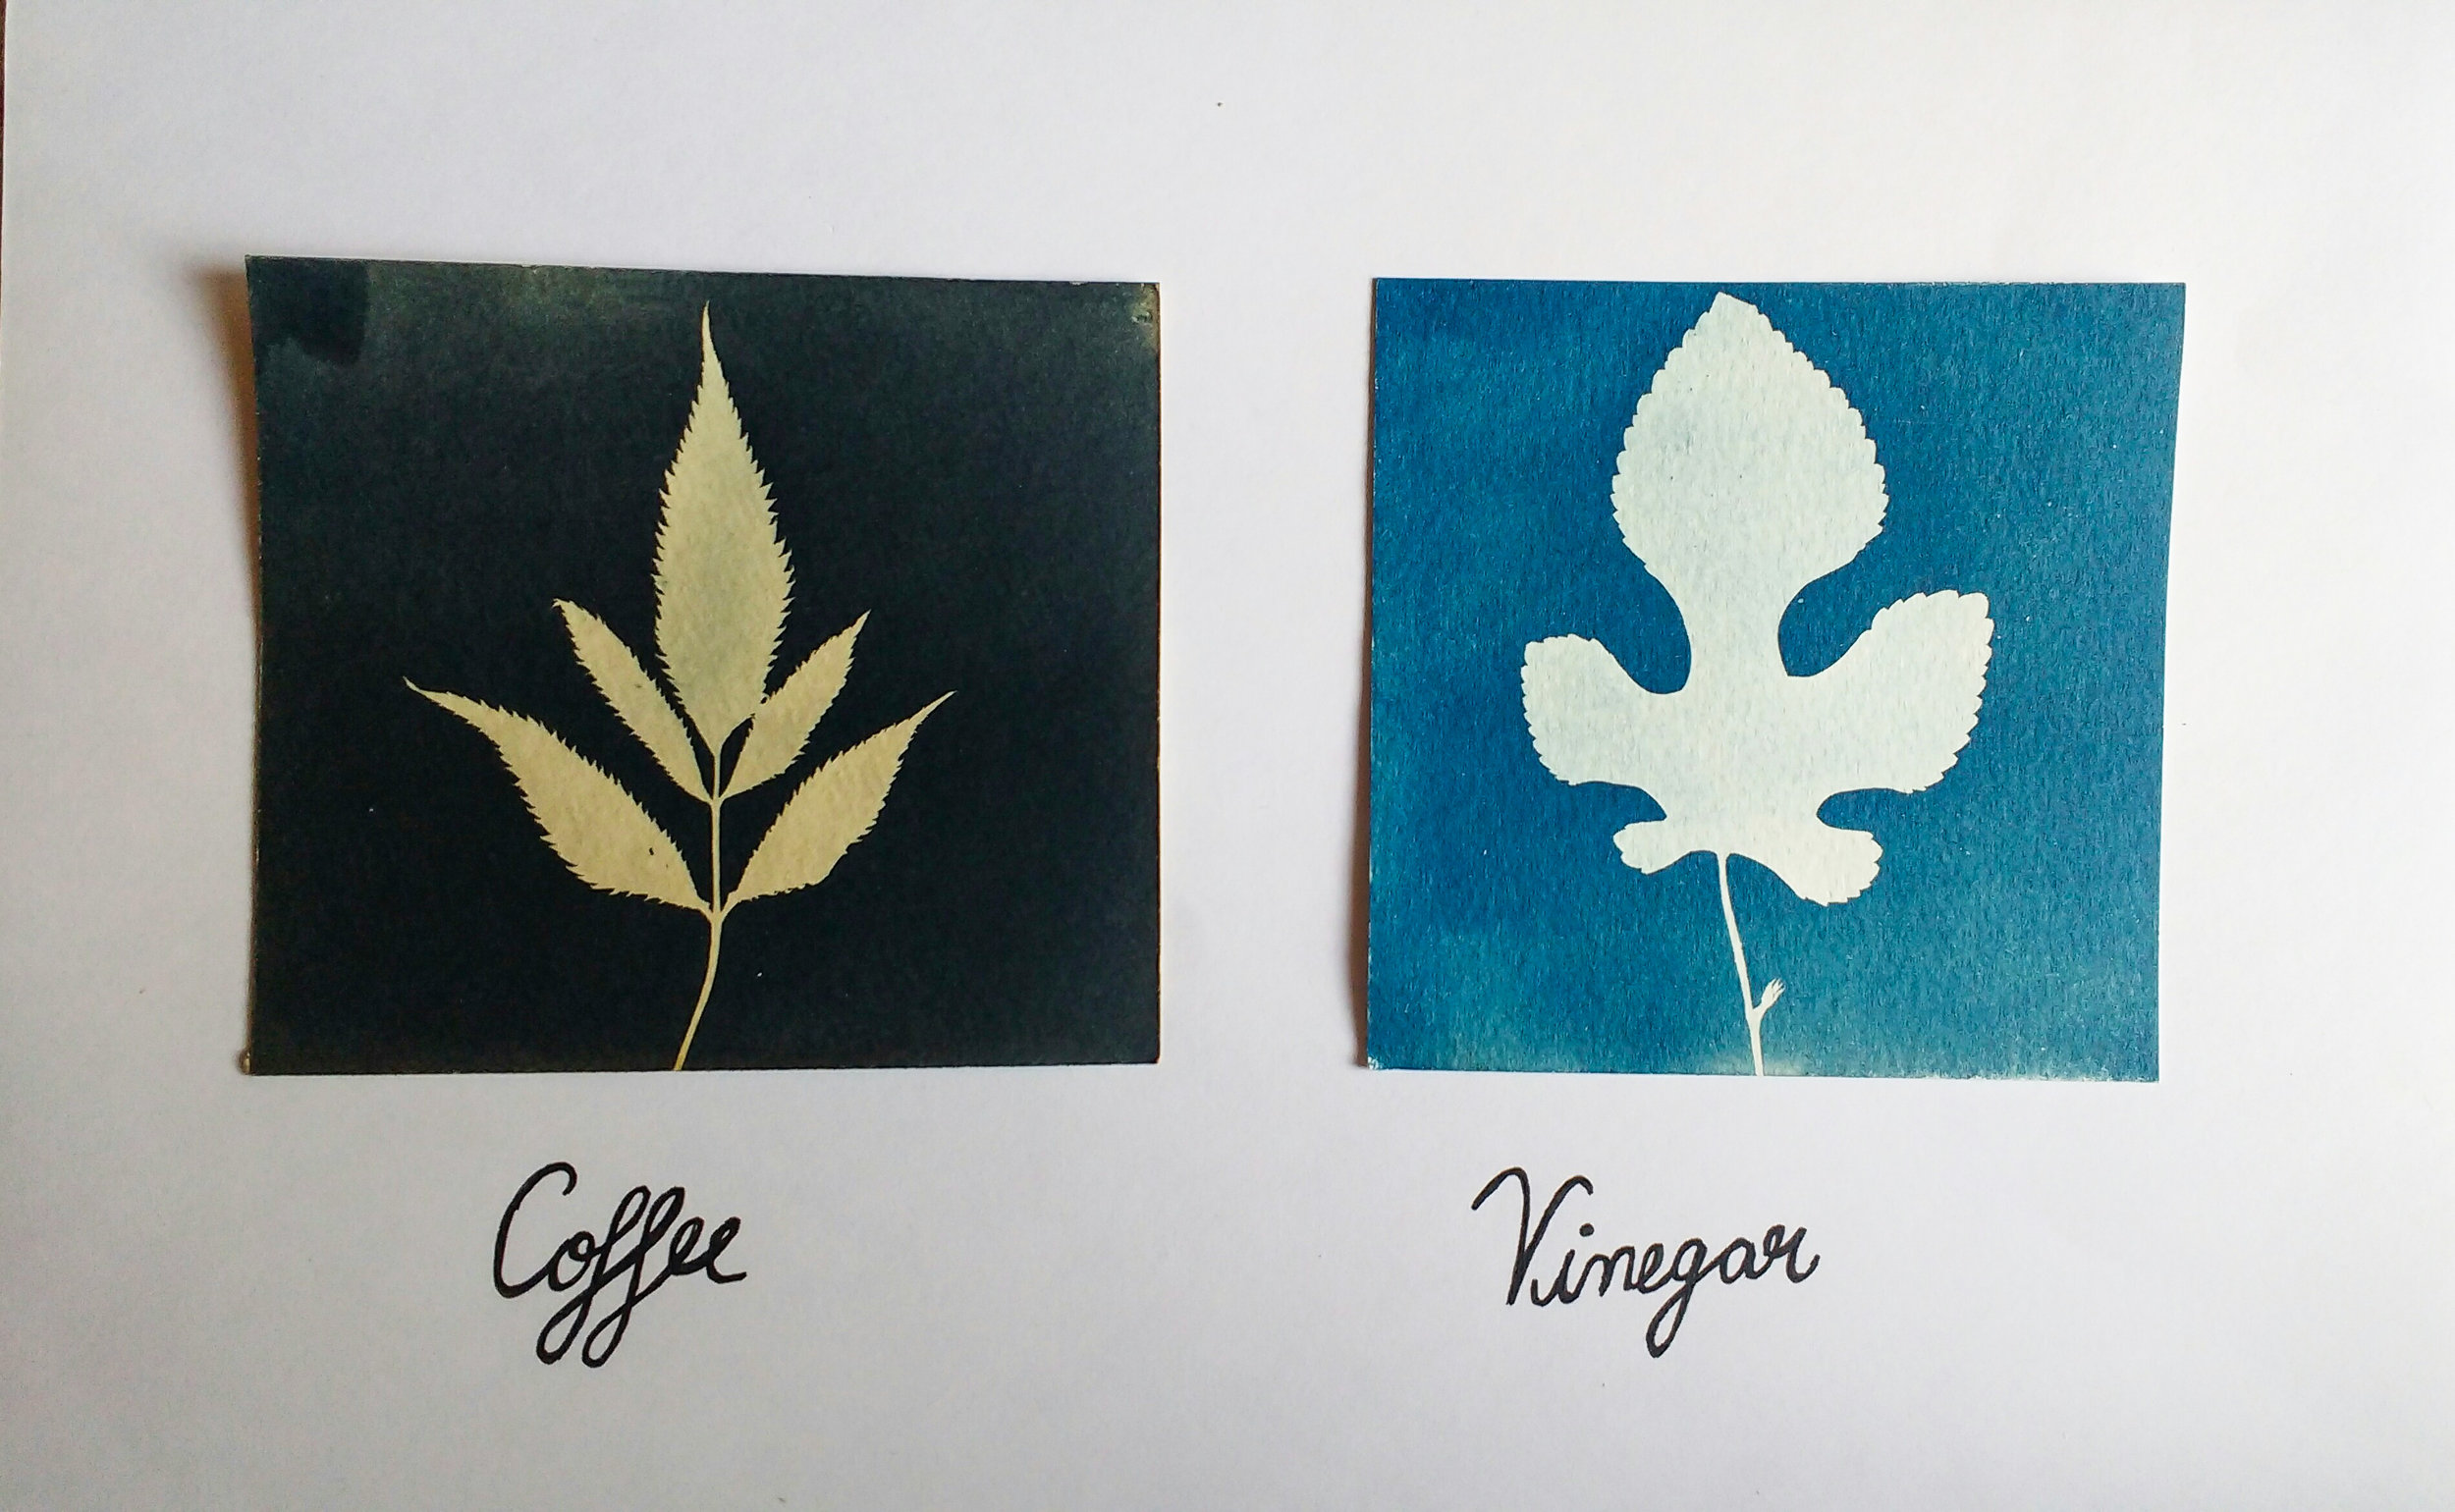 Cyanotype photograms using coffee and vinegar